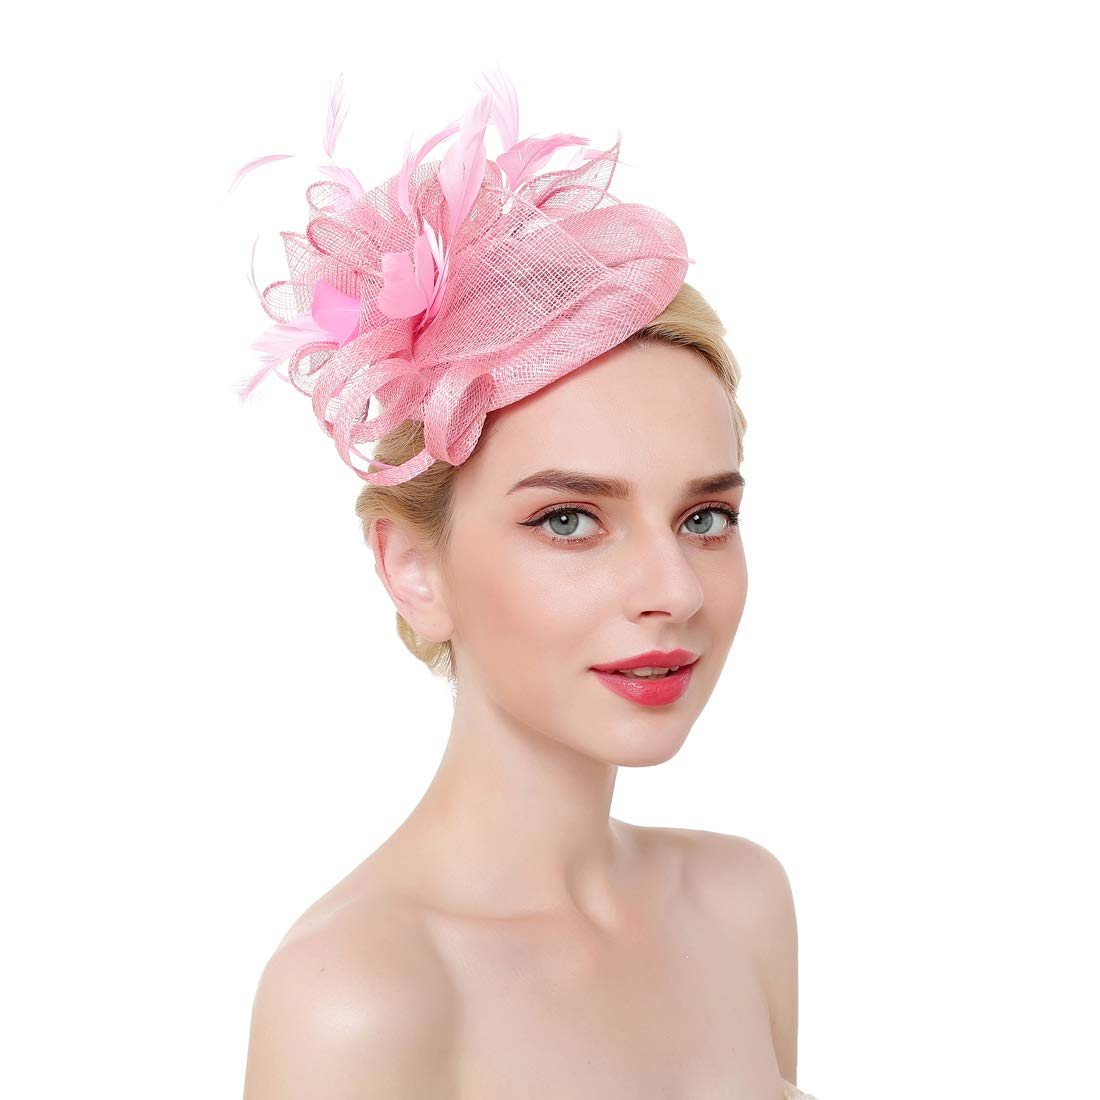 Womens Fascinator Kentucky Derby Hats Sinamay Feather Headpiece for Wedding Cocktail Tea Party